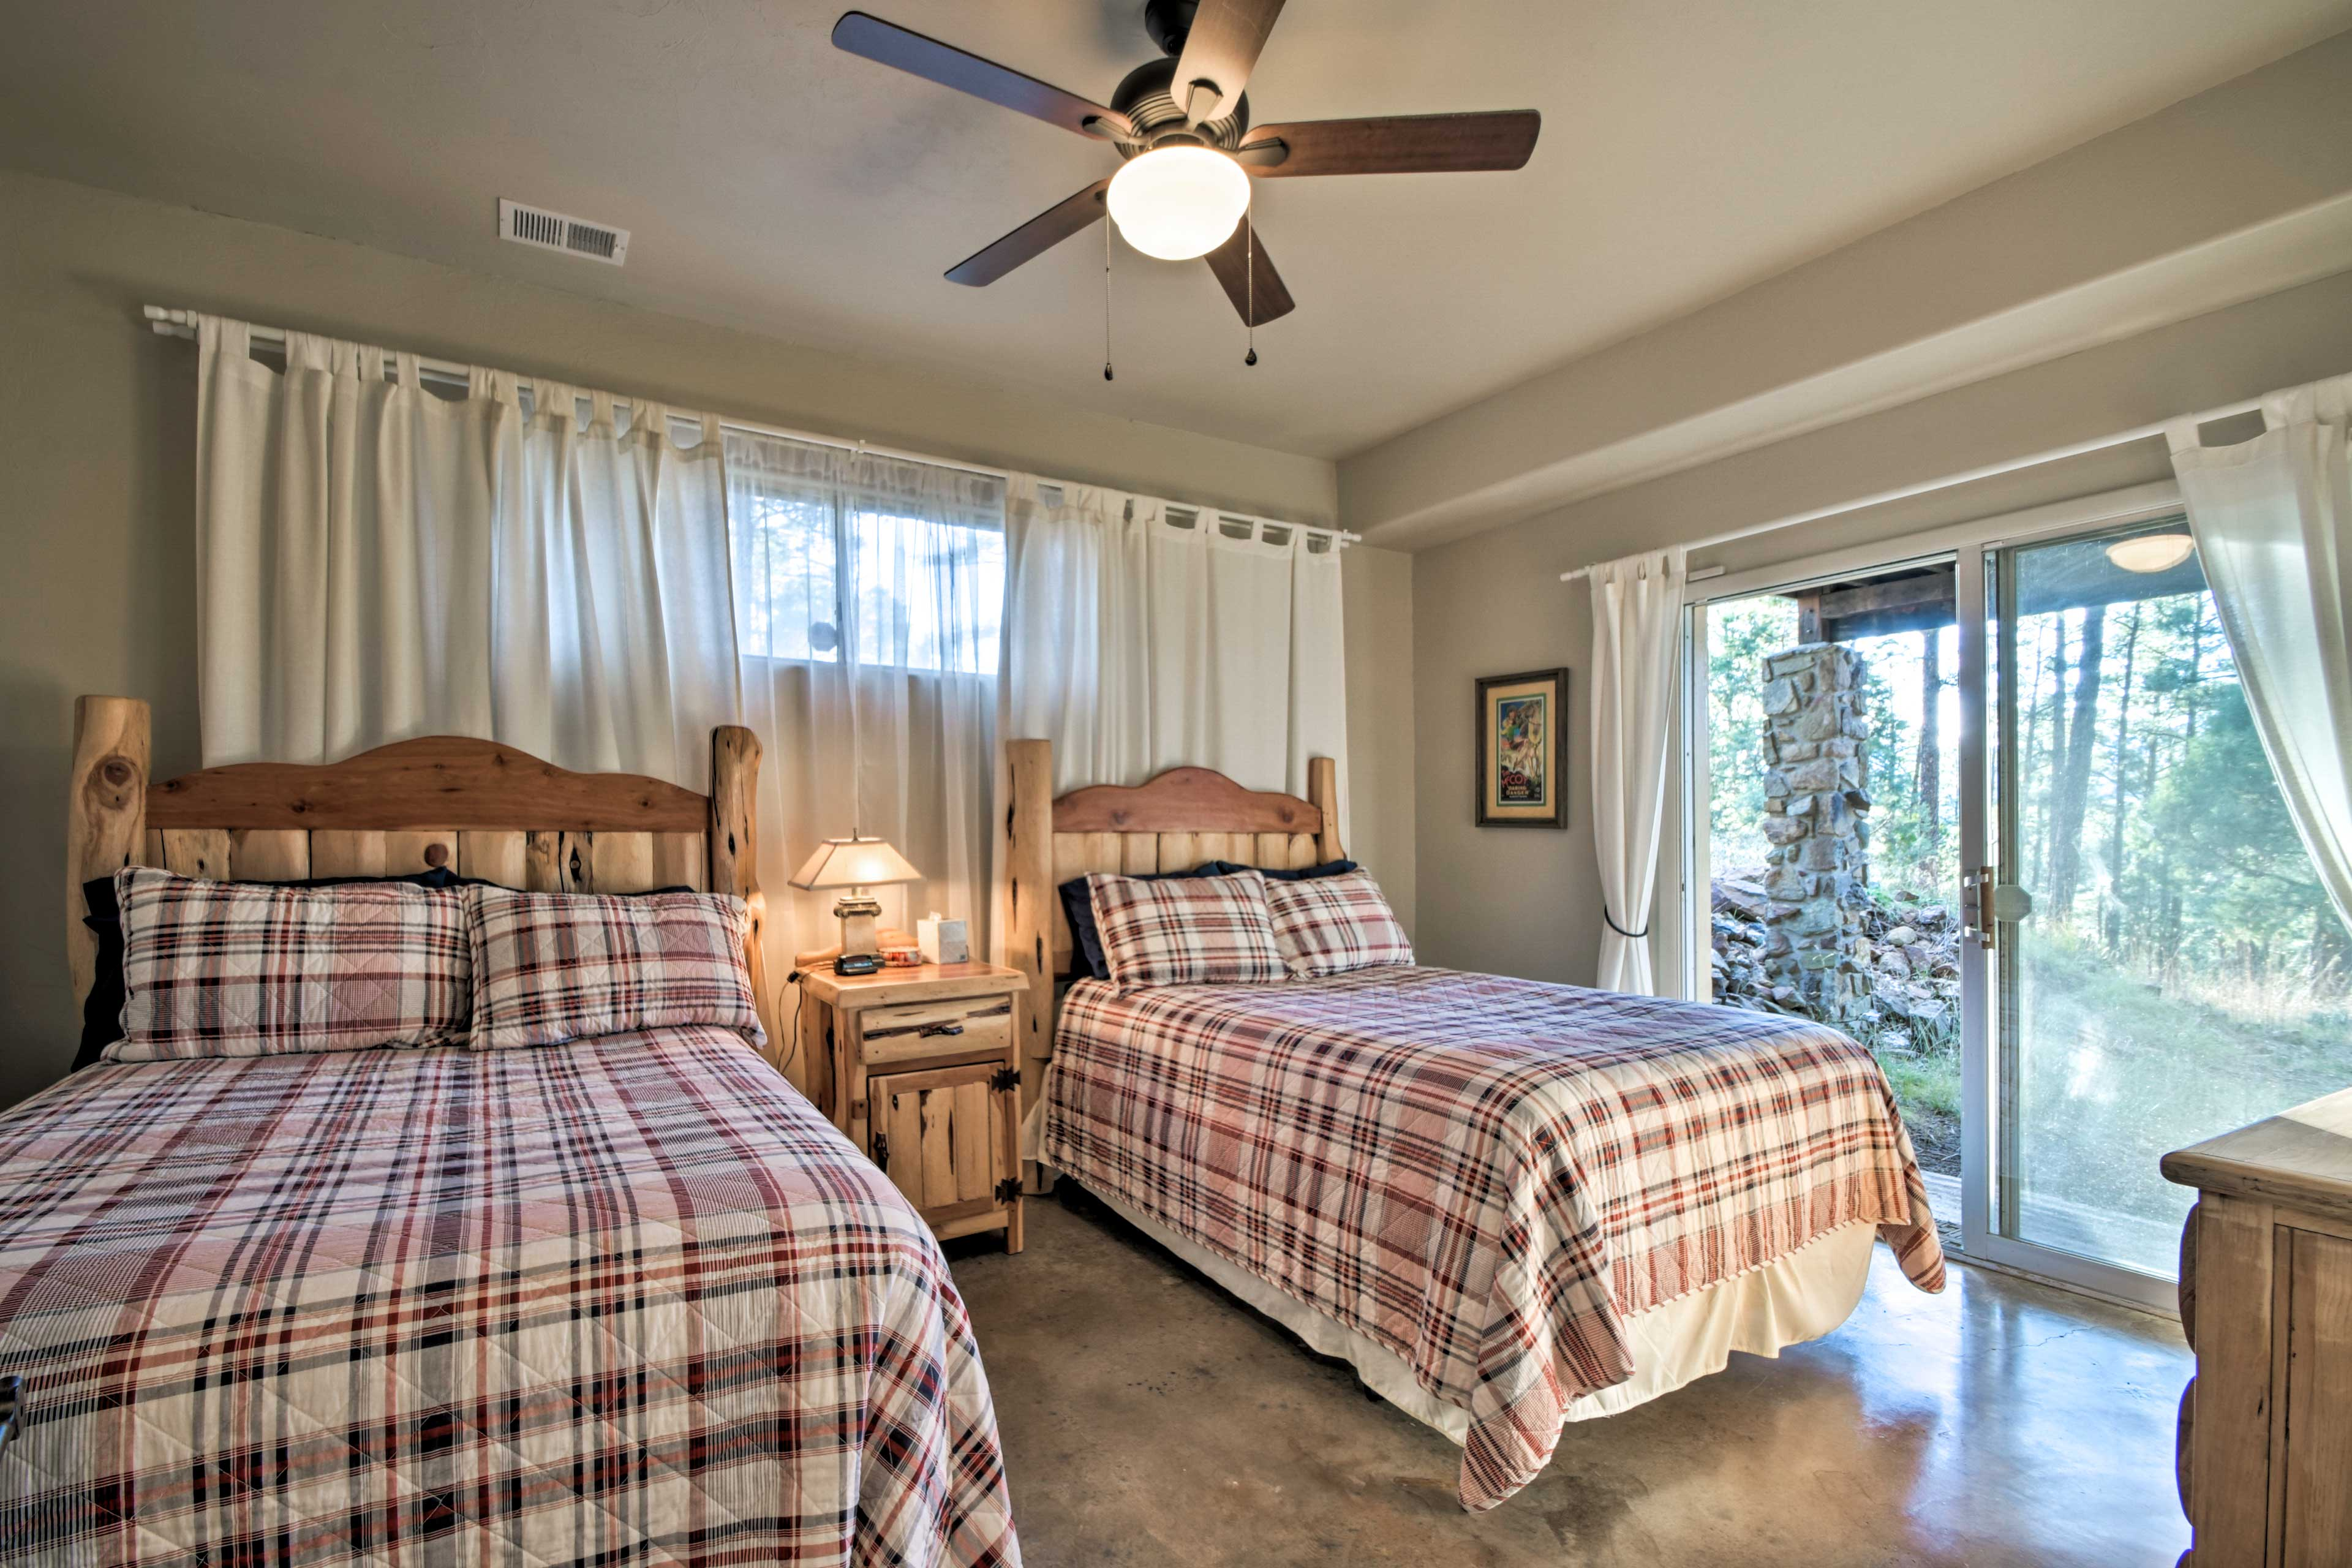 Aptly named, the plaid room boasts 2 full beds topped with soft bedding.